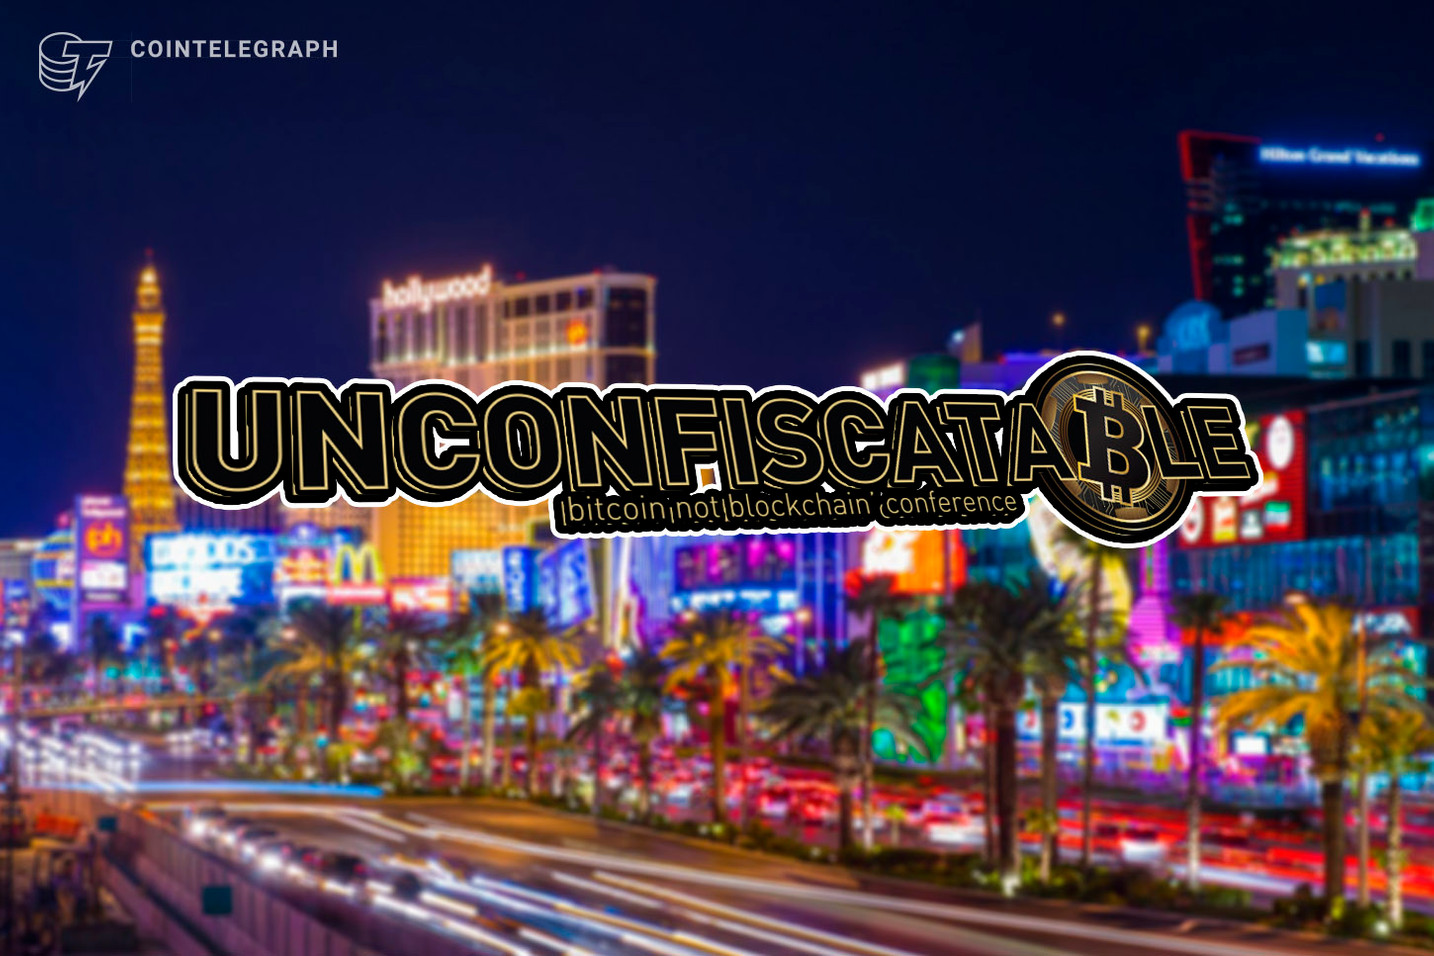 "Unconfiscatable ""Bitcoin Not Blockchain"" Conference"